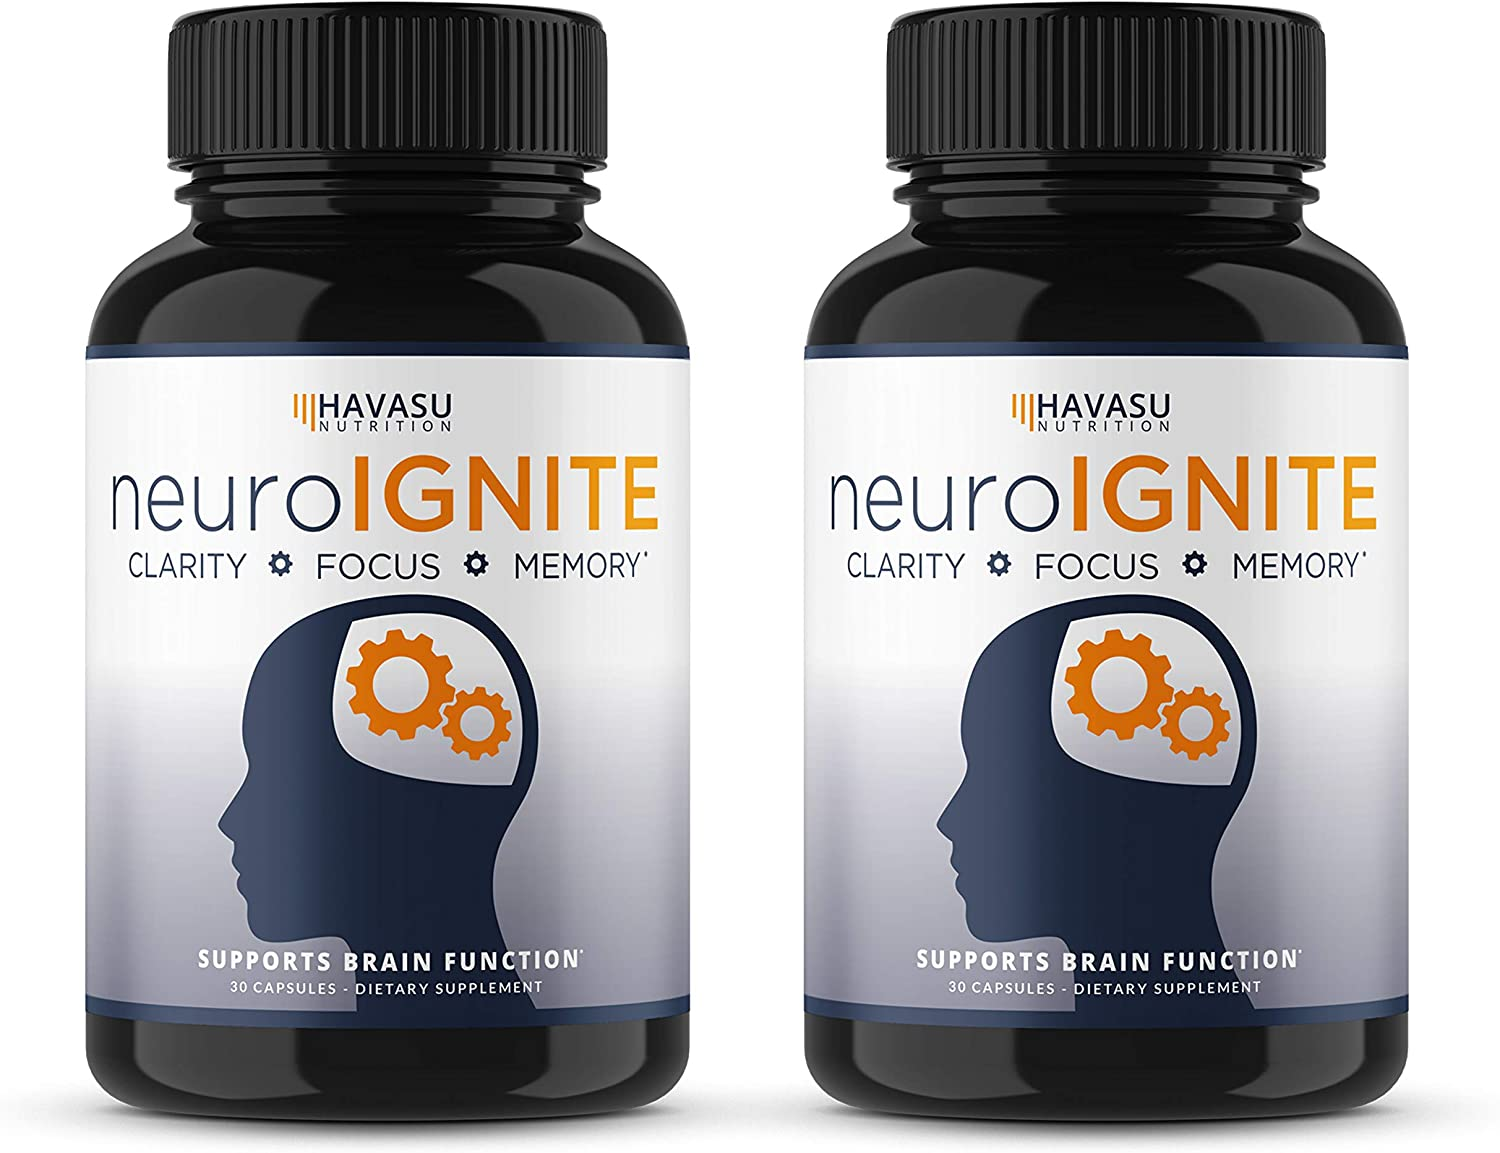 Havasu Nutrition Extra Strength Brain Supplement for Focus, Energy, Memory Clarity – Mental Performance Nootropic with St Johns Wort – Supports Brain Function for Men Women – 30 Capsules 2